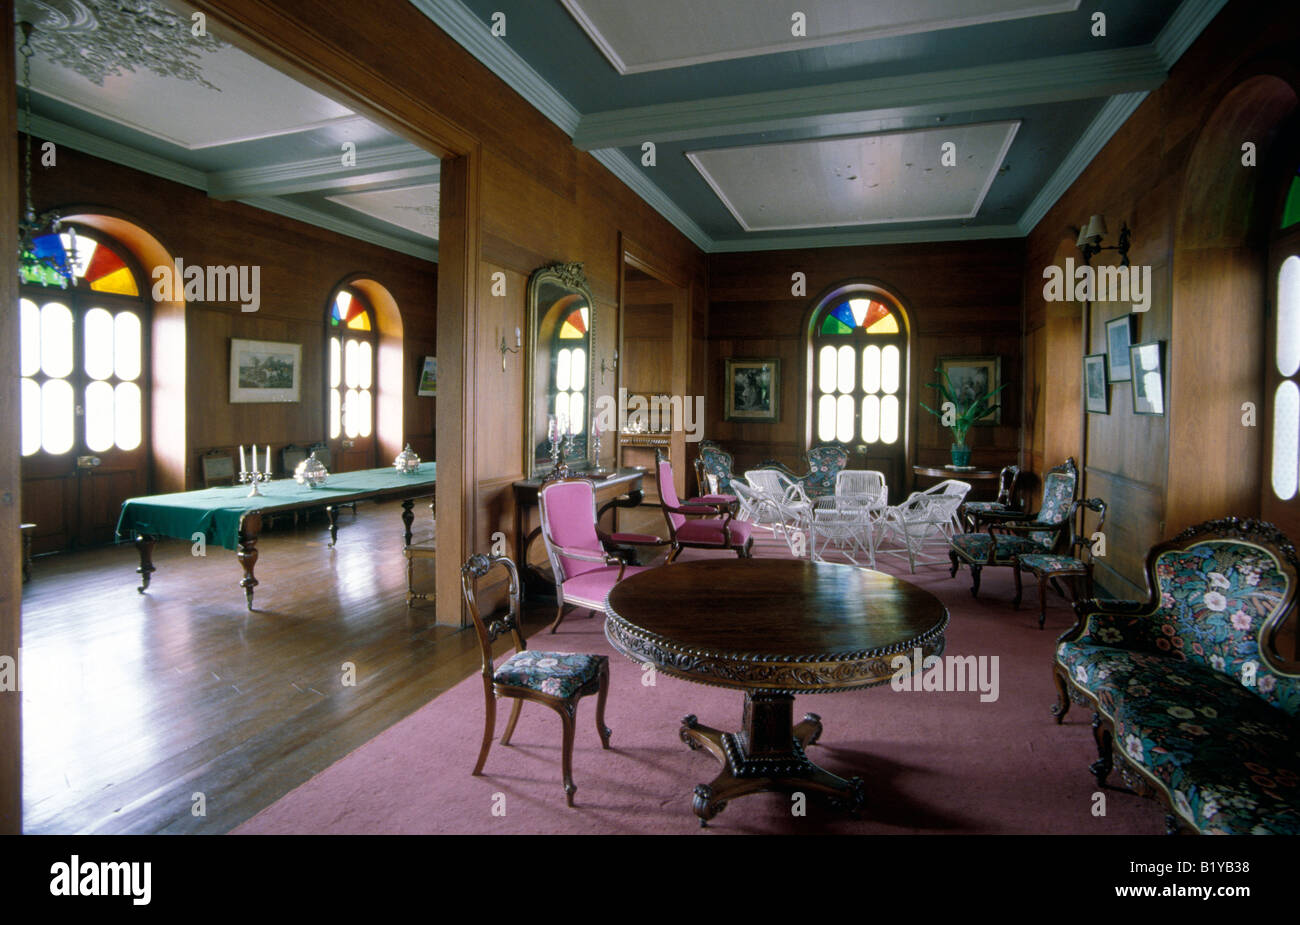 mauritius bel ombre chateau interior - Stock Image